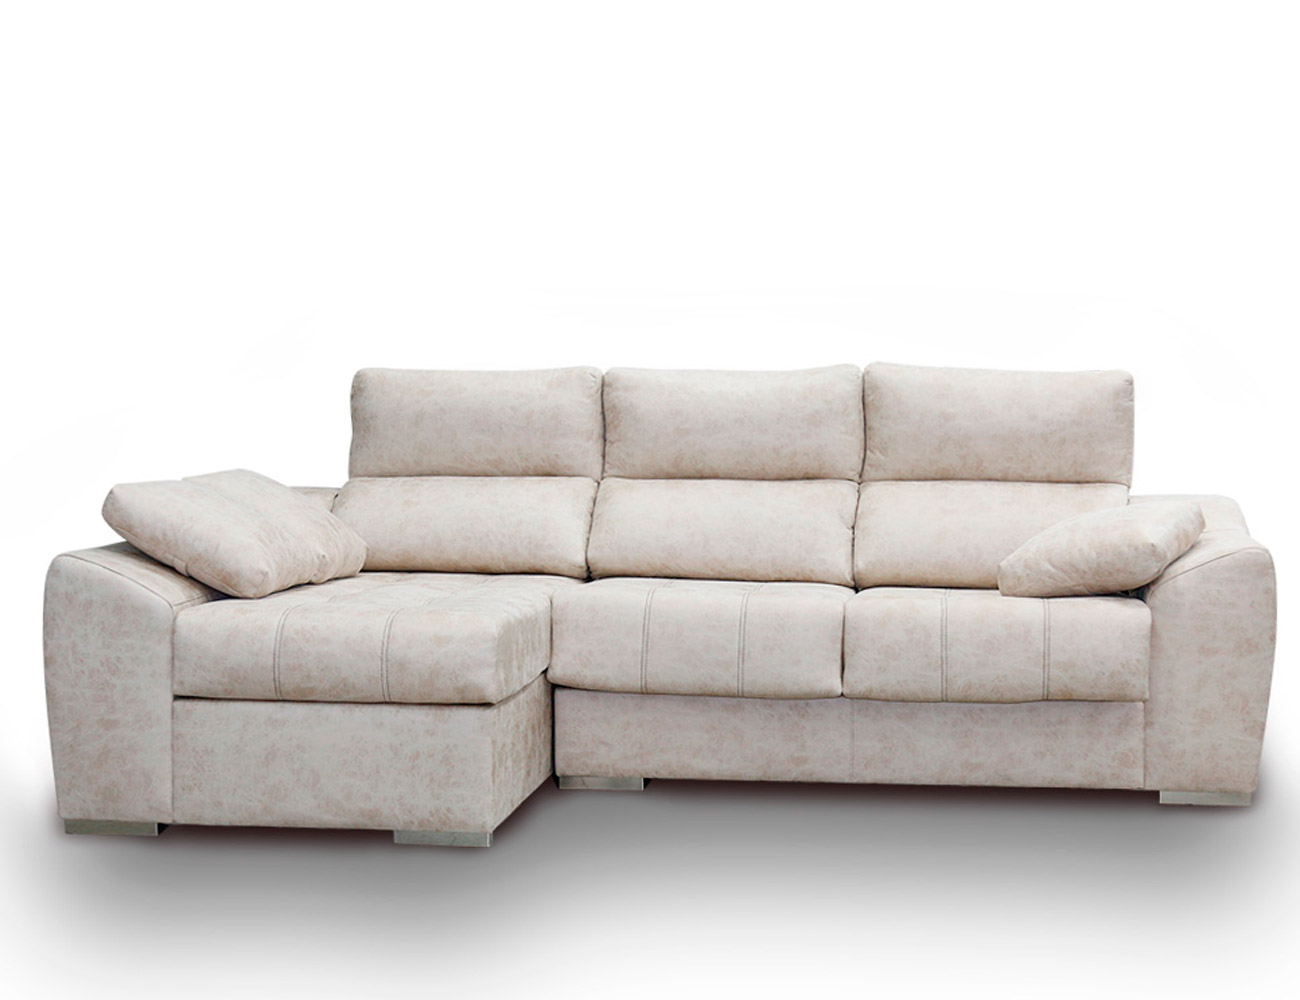 Sofa chaiselongue anti manchas beig blanco19